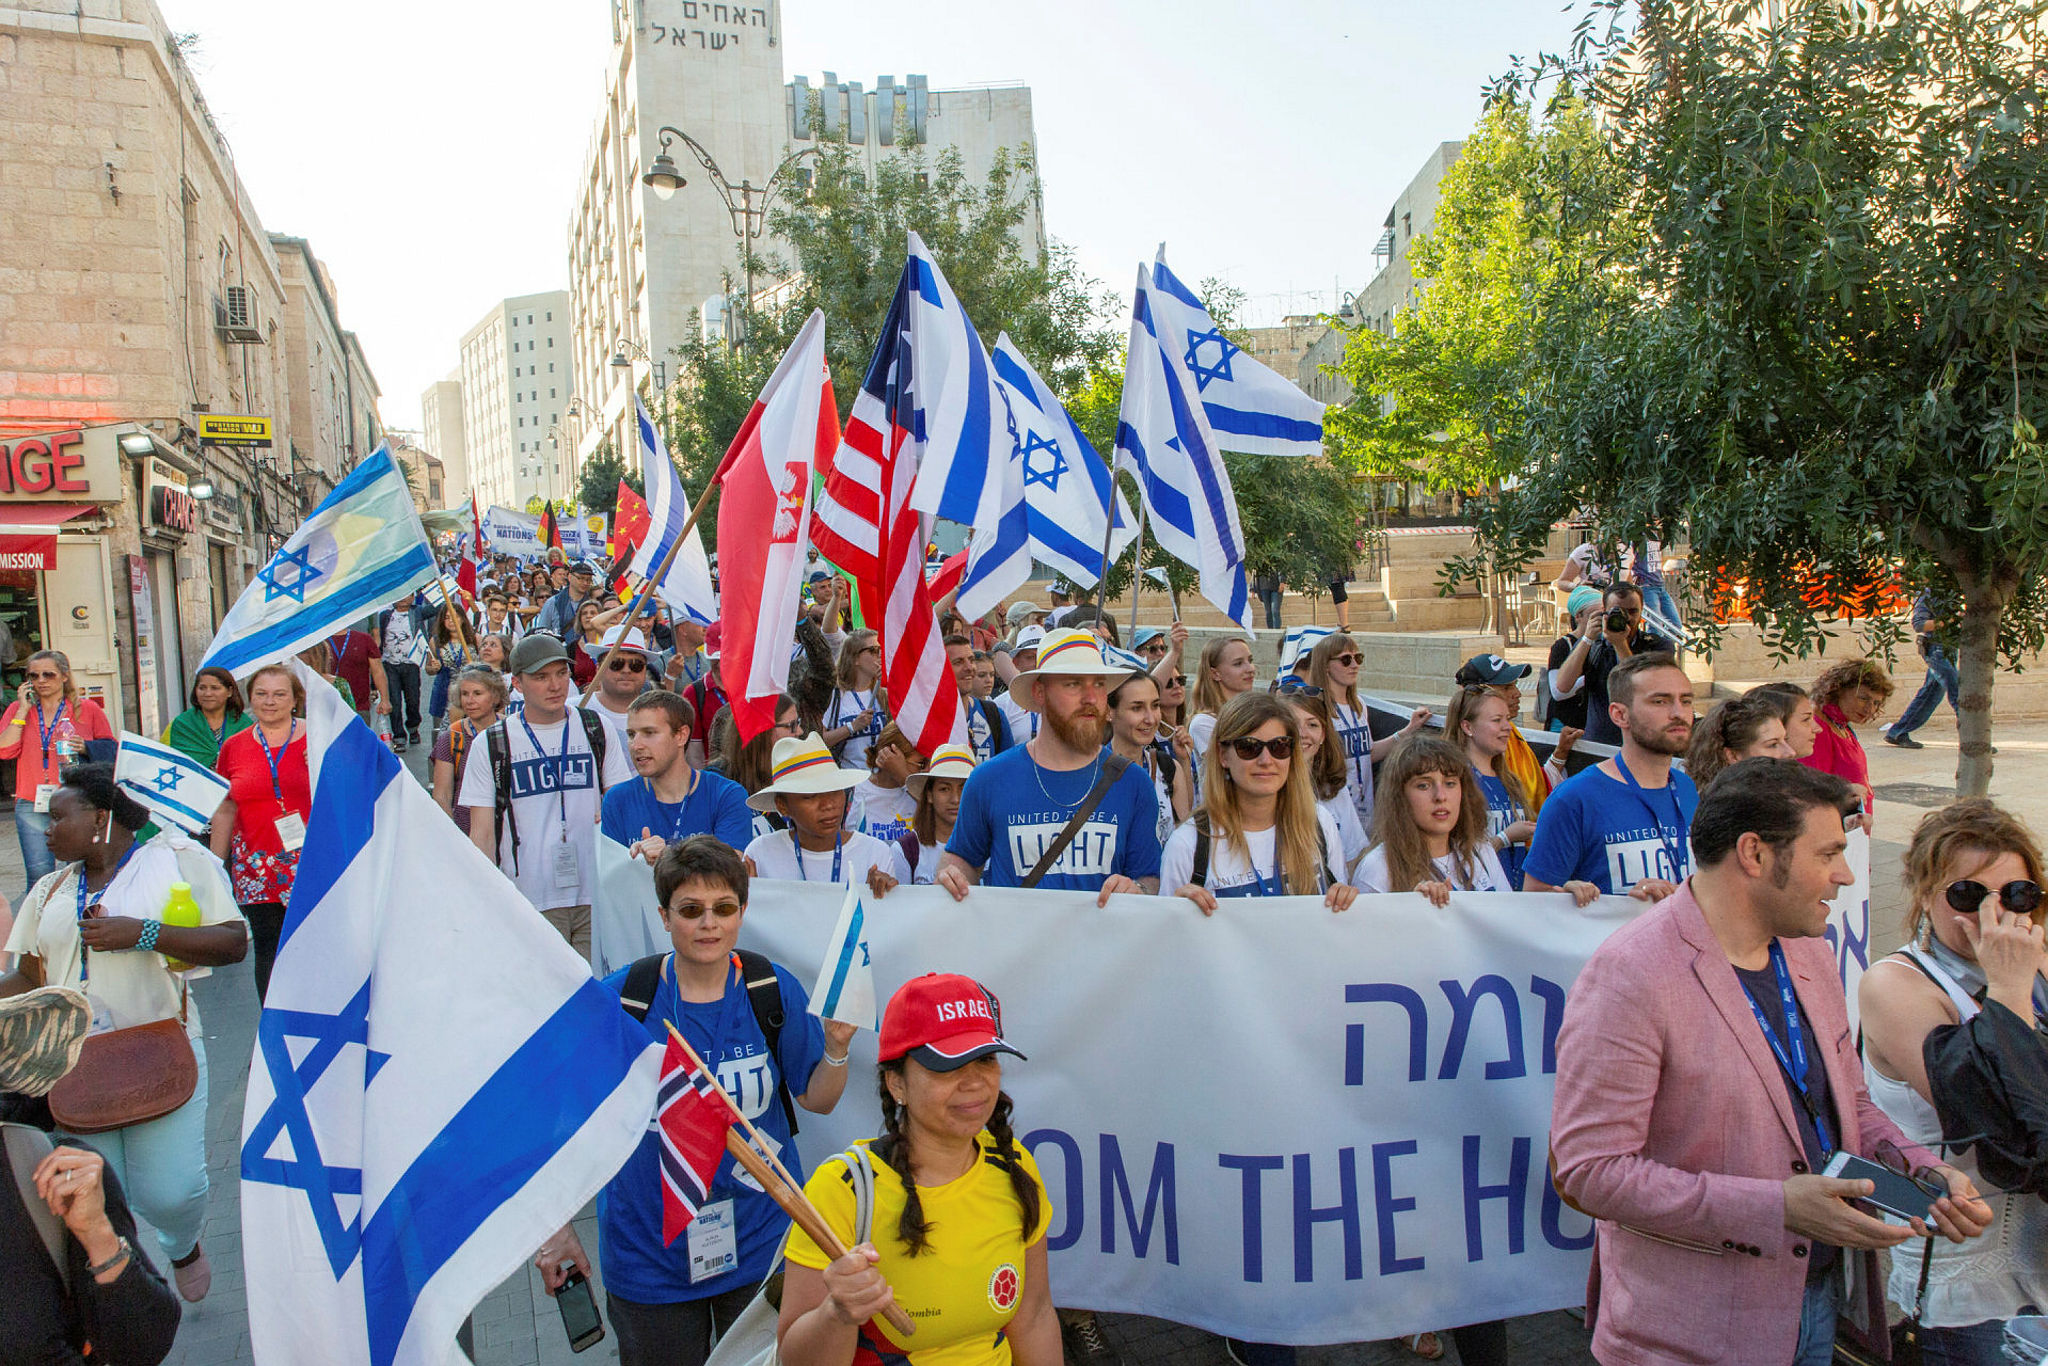 The March of the Nations 2018 in Jerusalem